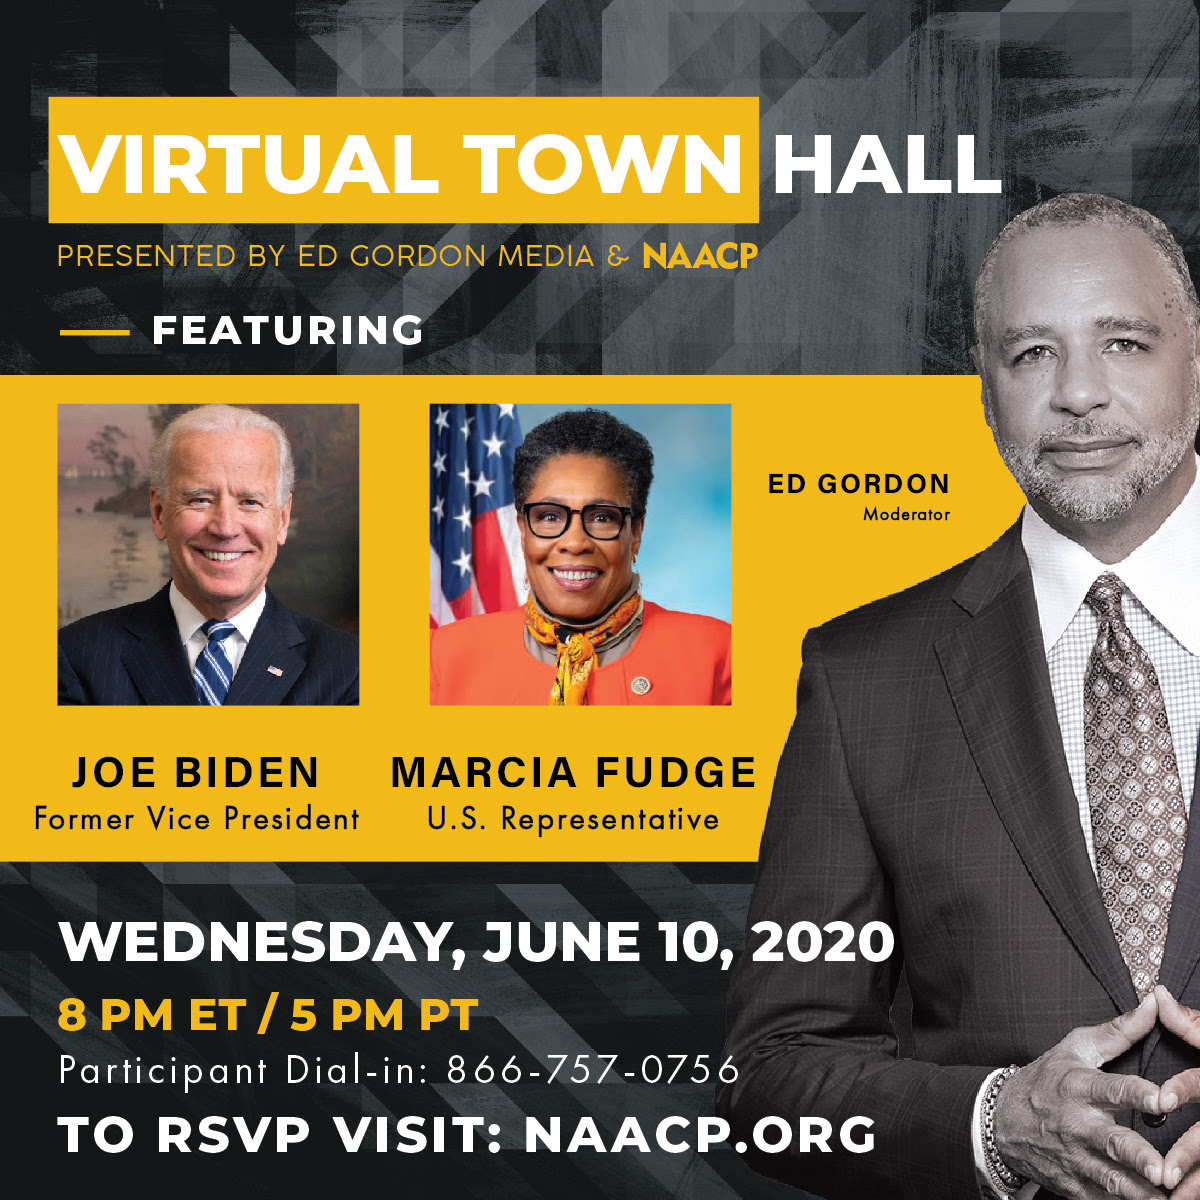 RSVP for the Upcoming Virtual Town Hall Featuring Vice President Joe Biden and U.S.Representative Marcia Fudge on NAACP.org